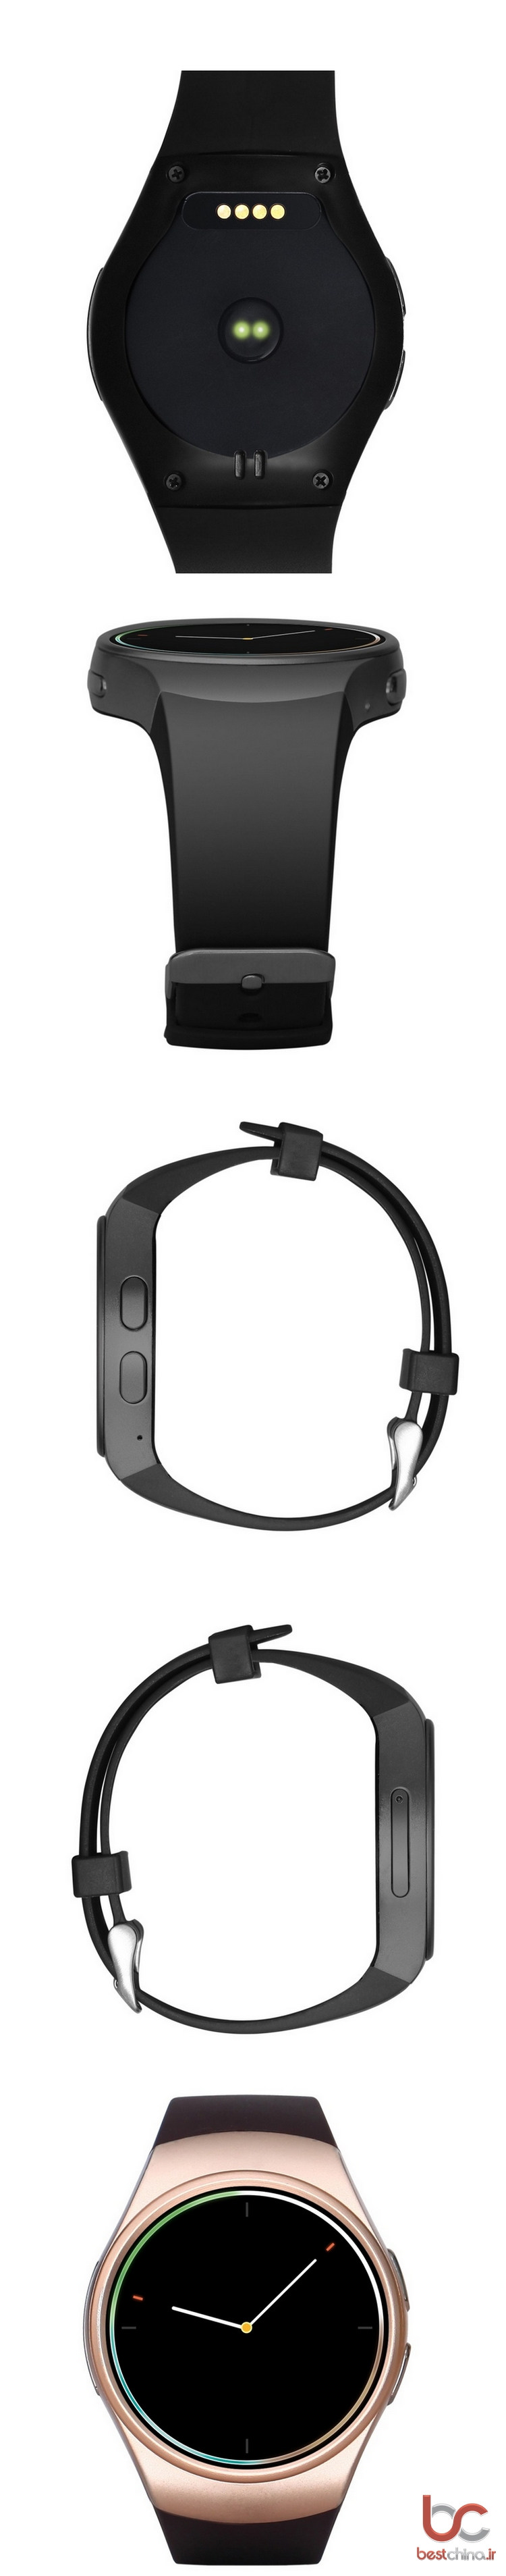 Kingwear KW18 Smartwatch (1)